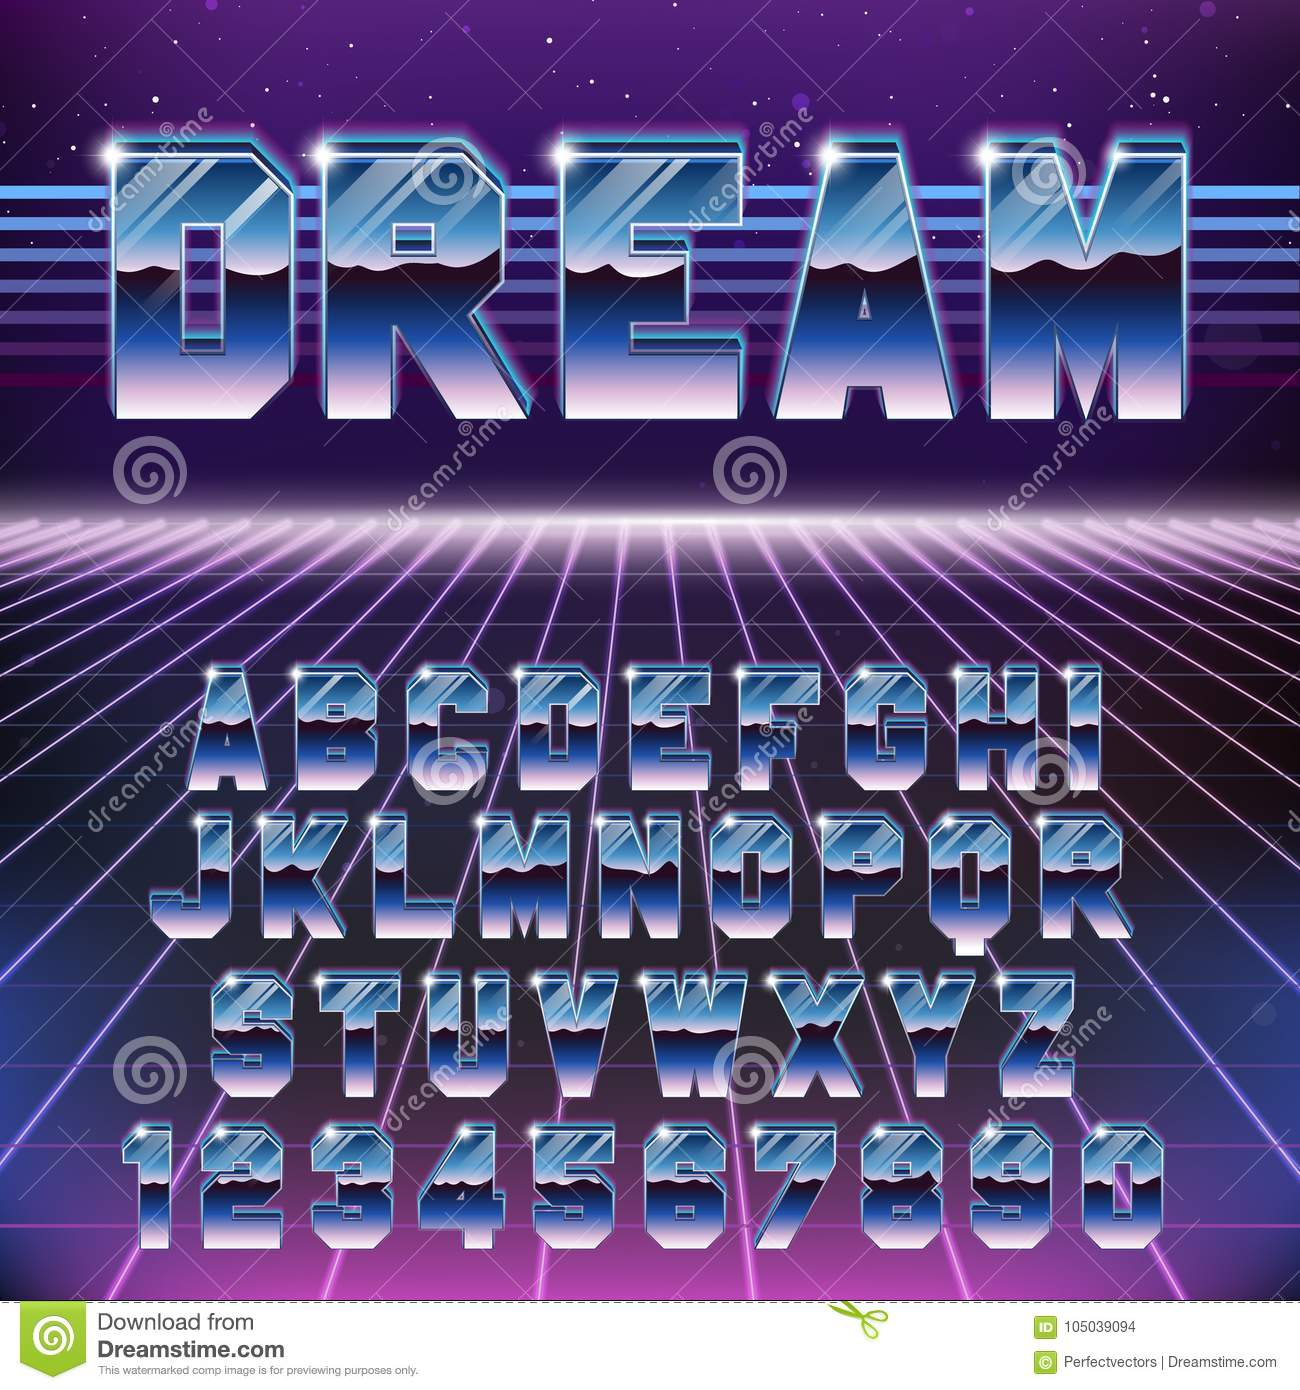 Shiny Chrome Retro Futuristic Font  Stylish Retro Synth Wave